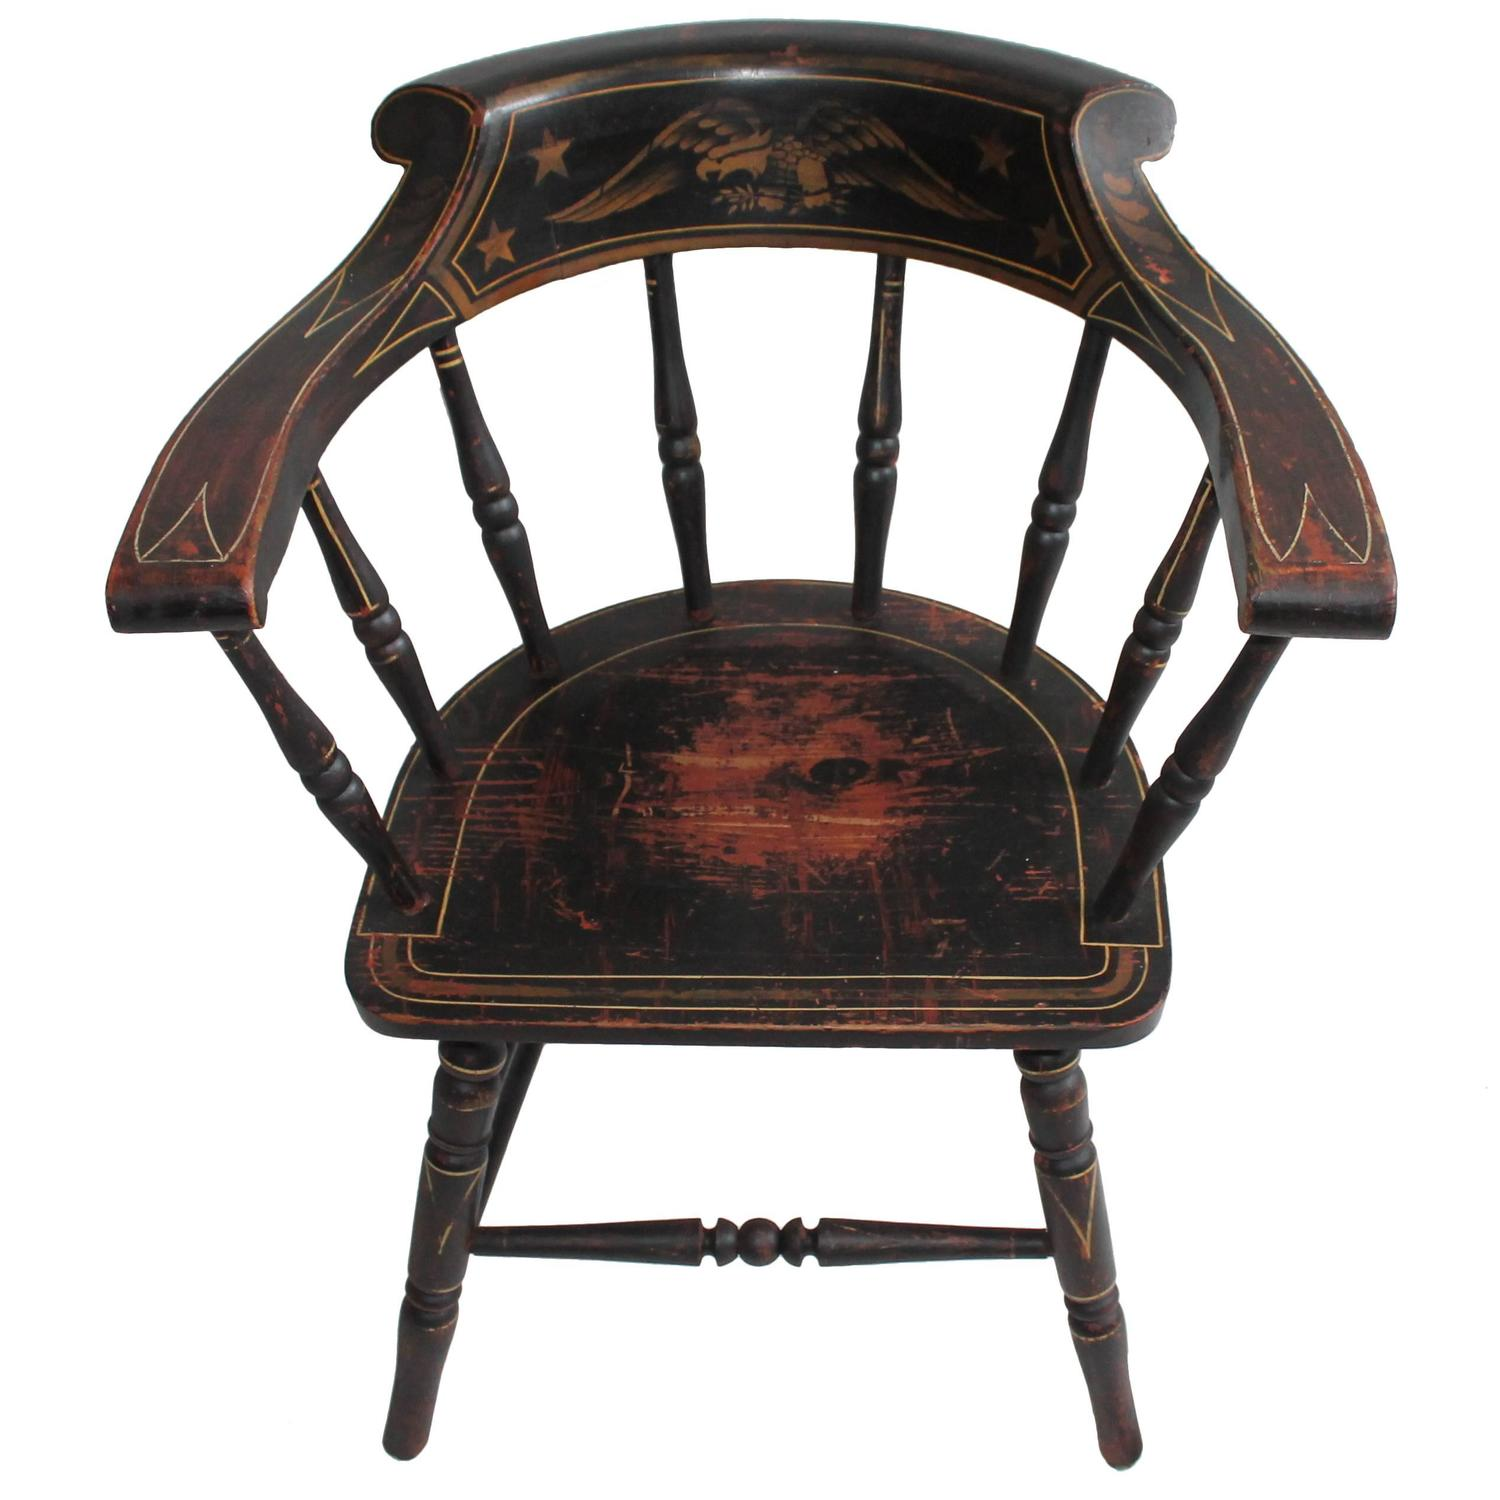 19th century original paint decorated captains chair with eagle and